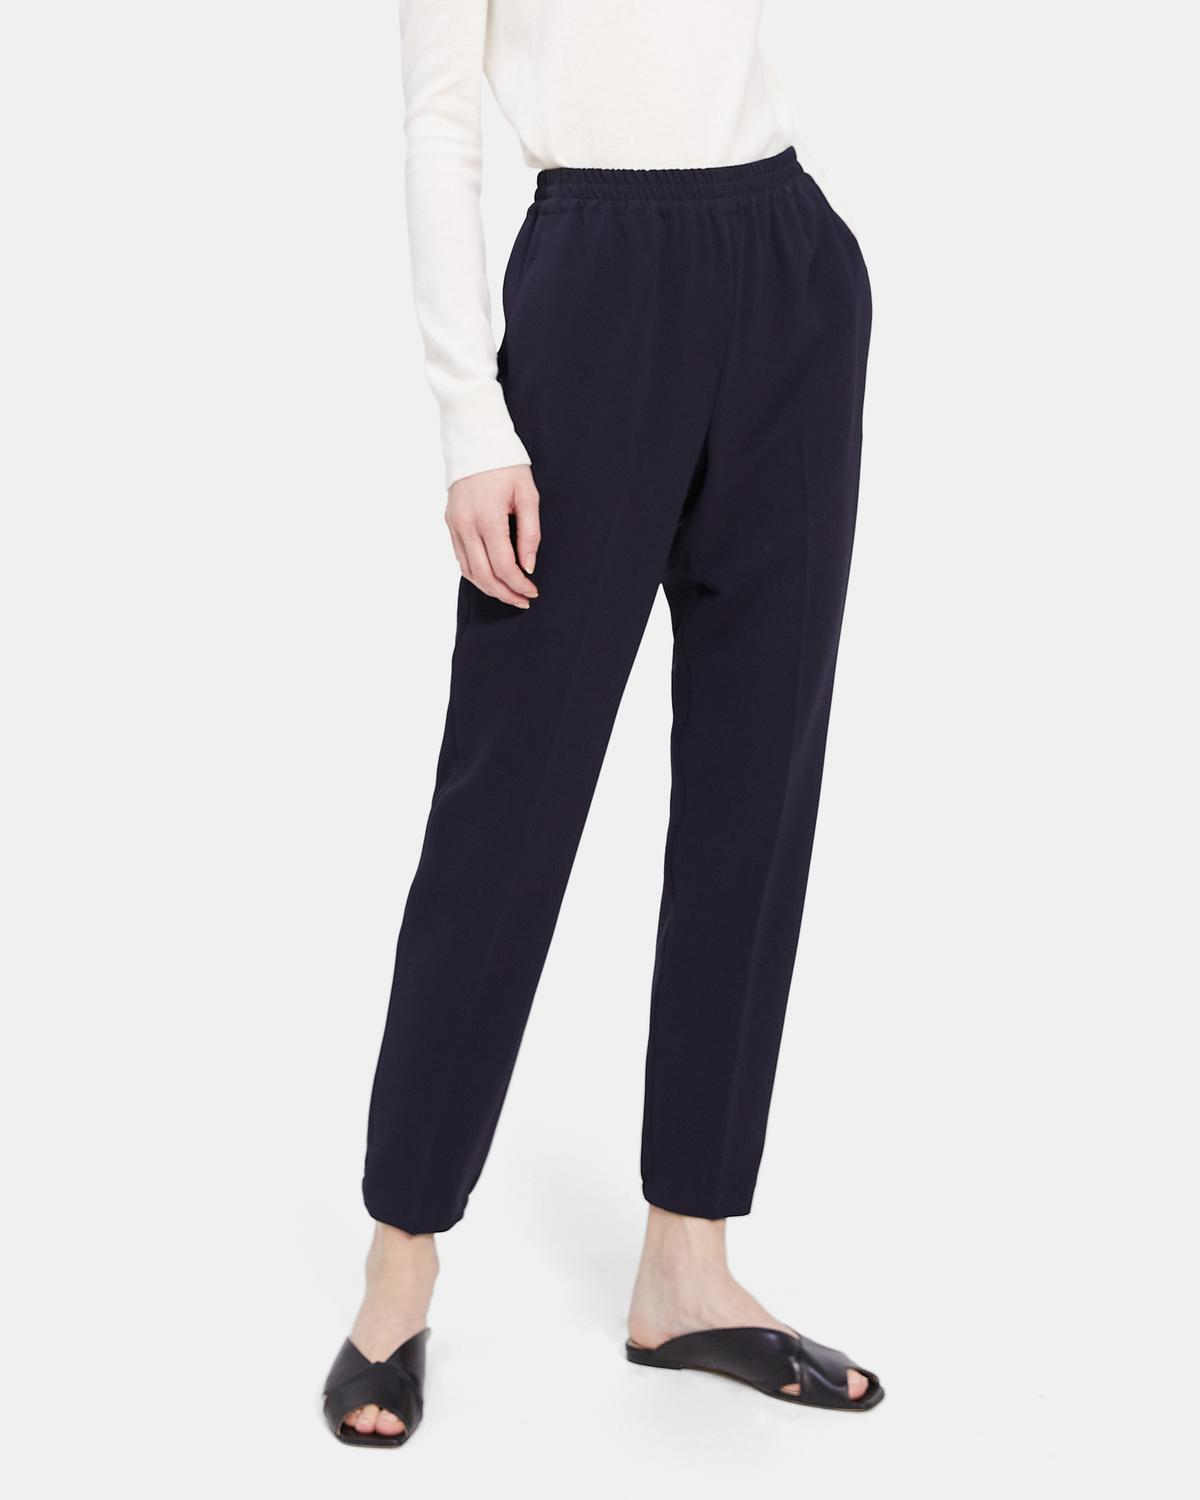 EASY JOGGER PANT